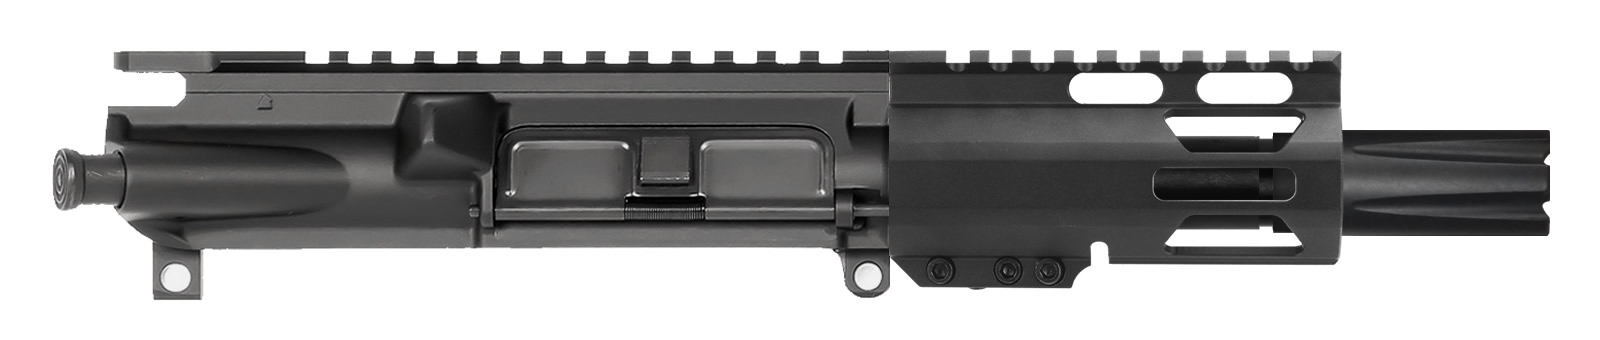 "AR-9 AR Pistol Upper Assembly 4"" with 4"" M-LOK After Burner Compensator"